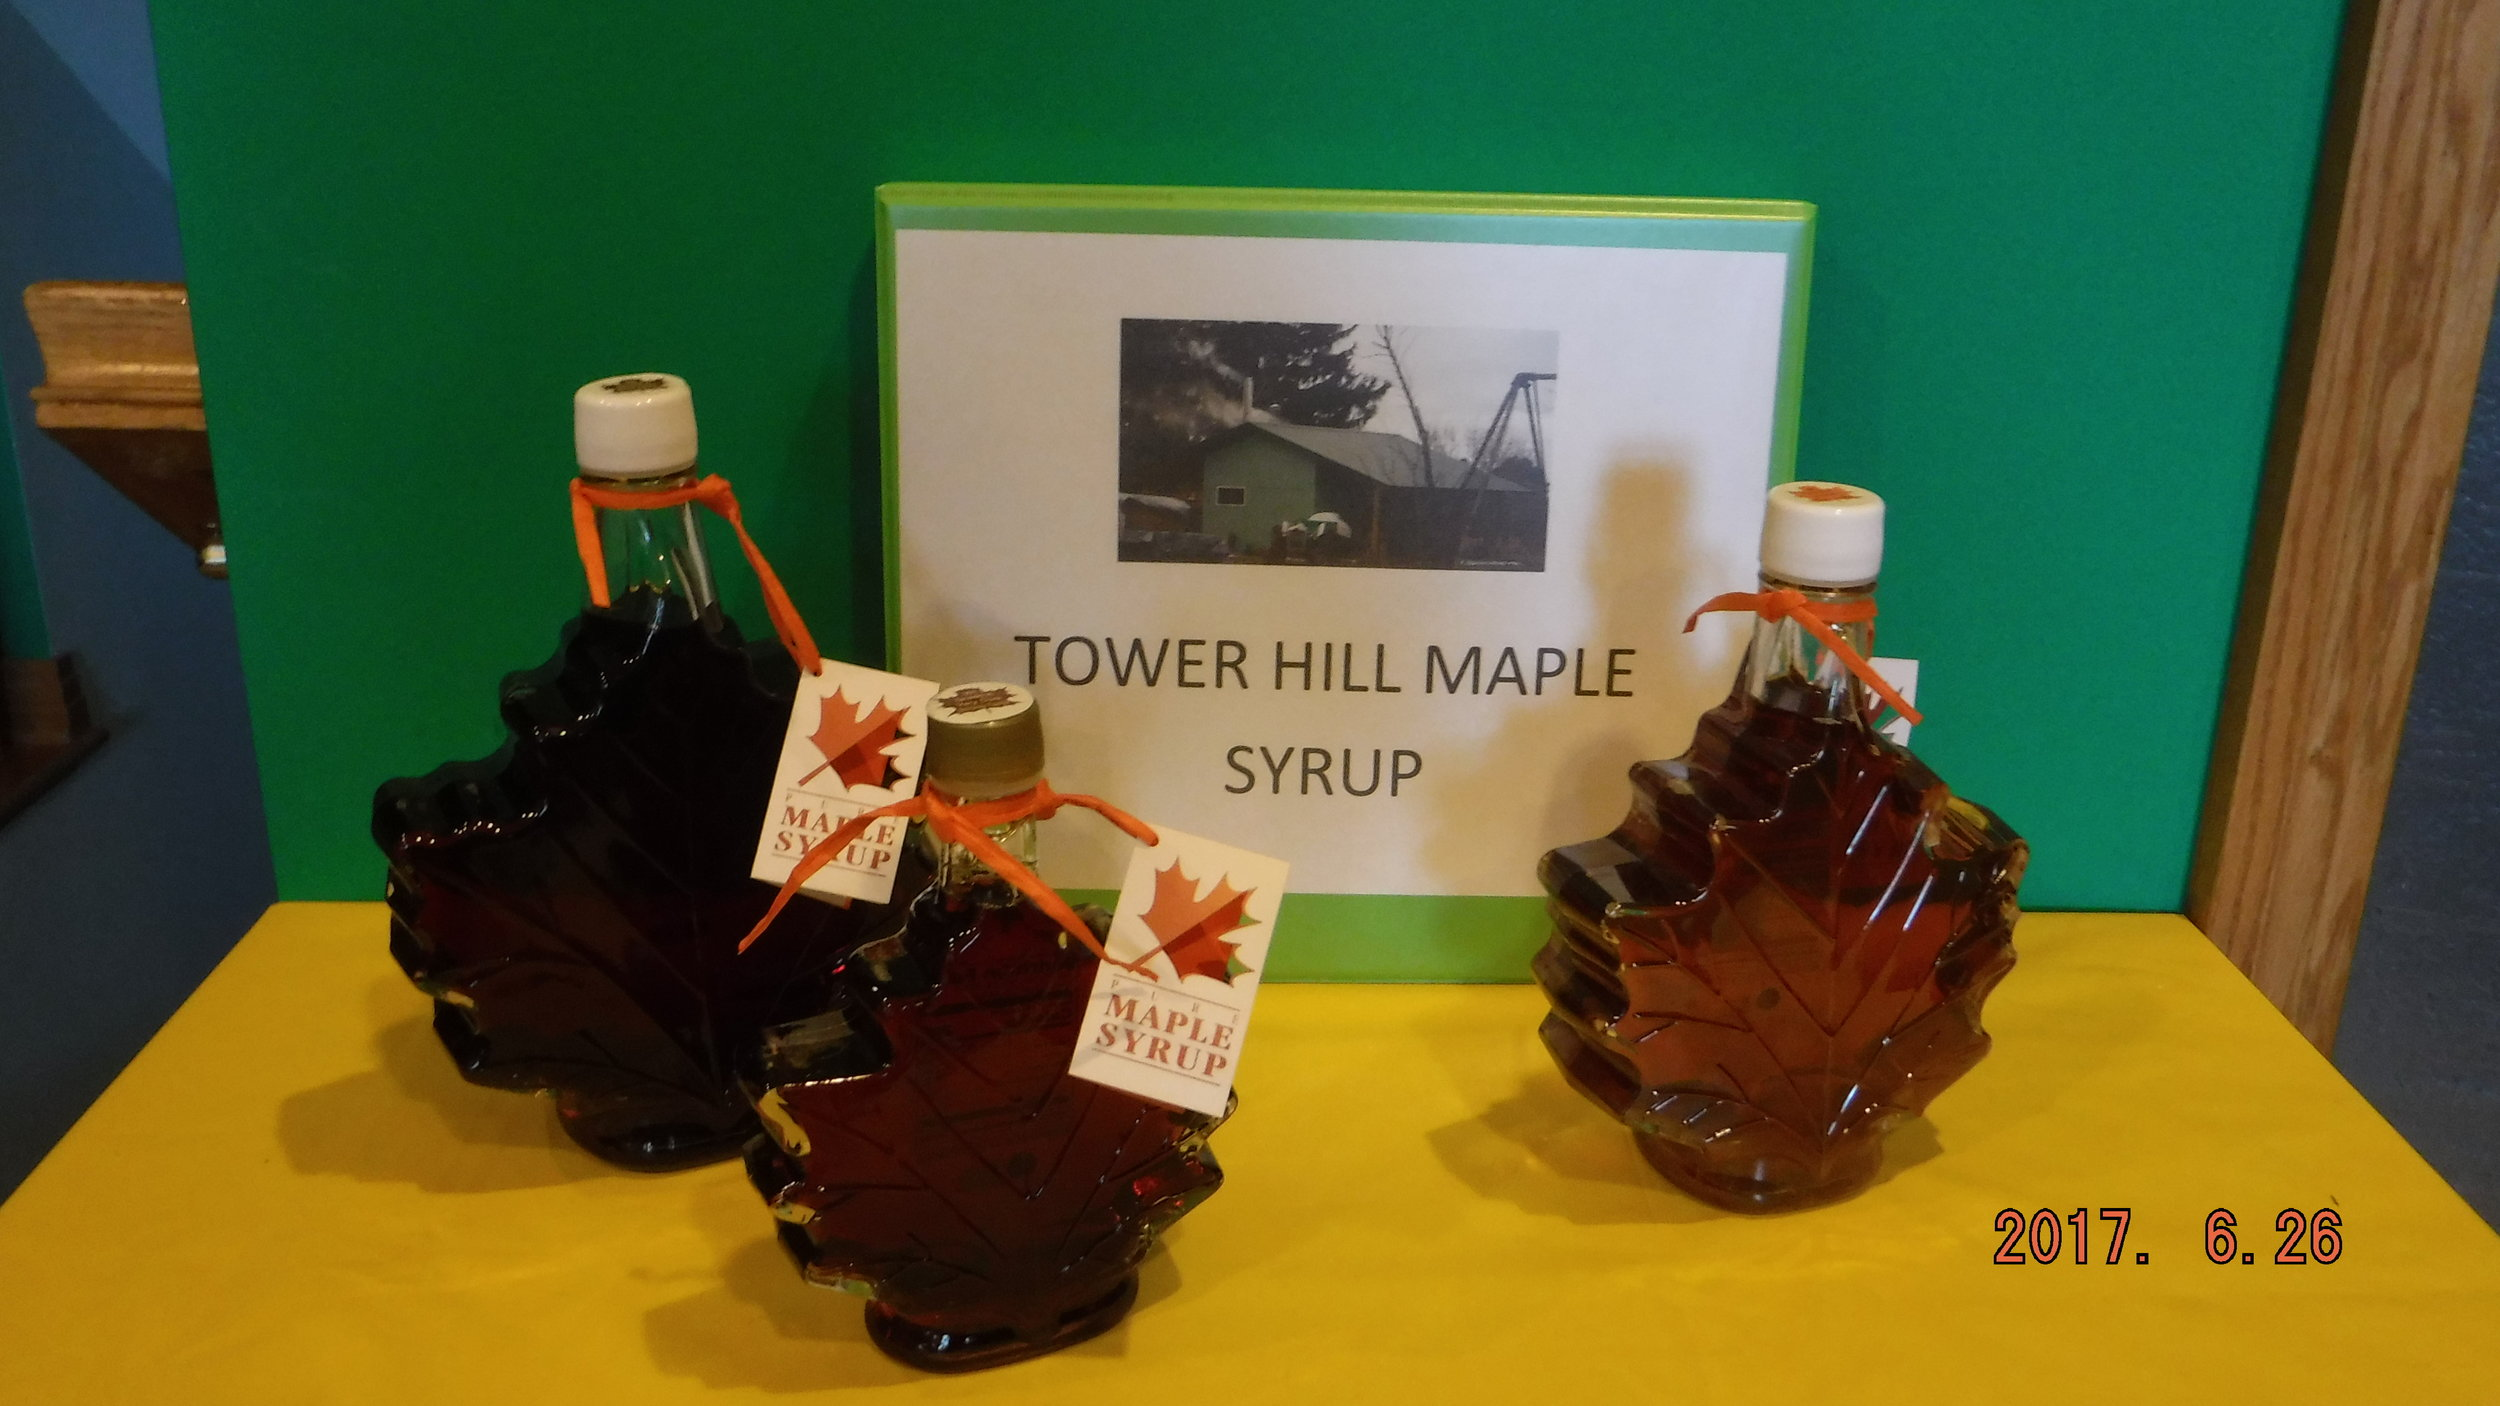 Tower Hill Maple Syrup - Tower Hill Maple Syrup is a family run small business continuing the family tradition of syrup making. The woods and syrup house are located in Rudolph, WI on the family farm.